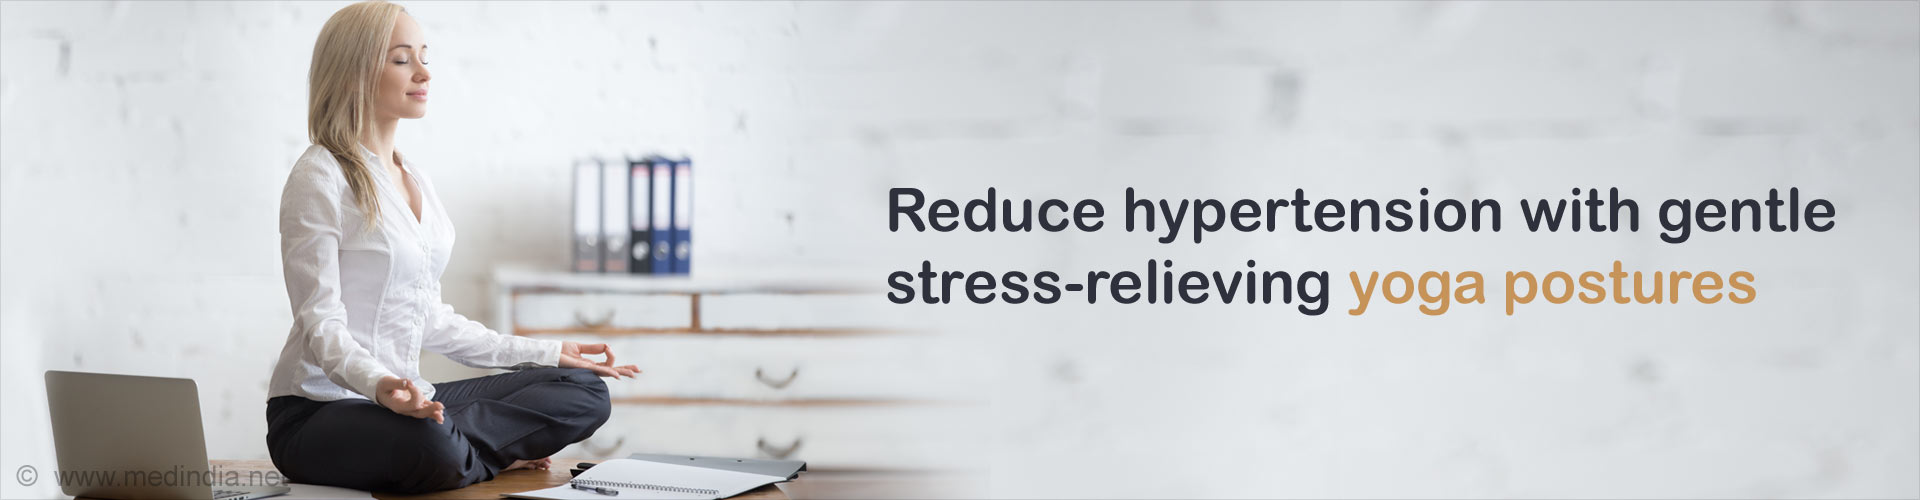 Reduce hypertension with gentle stress-relieving yoga postures